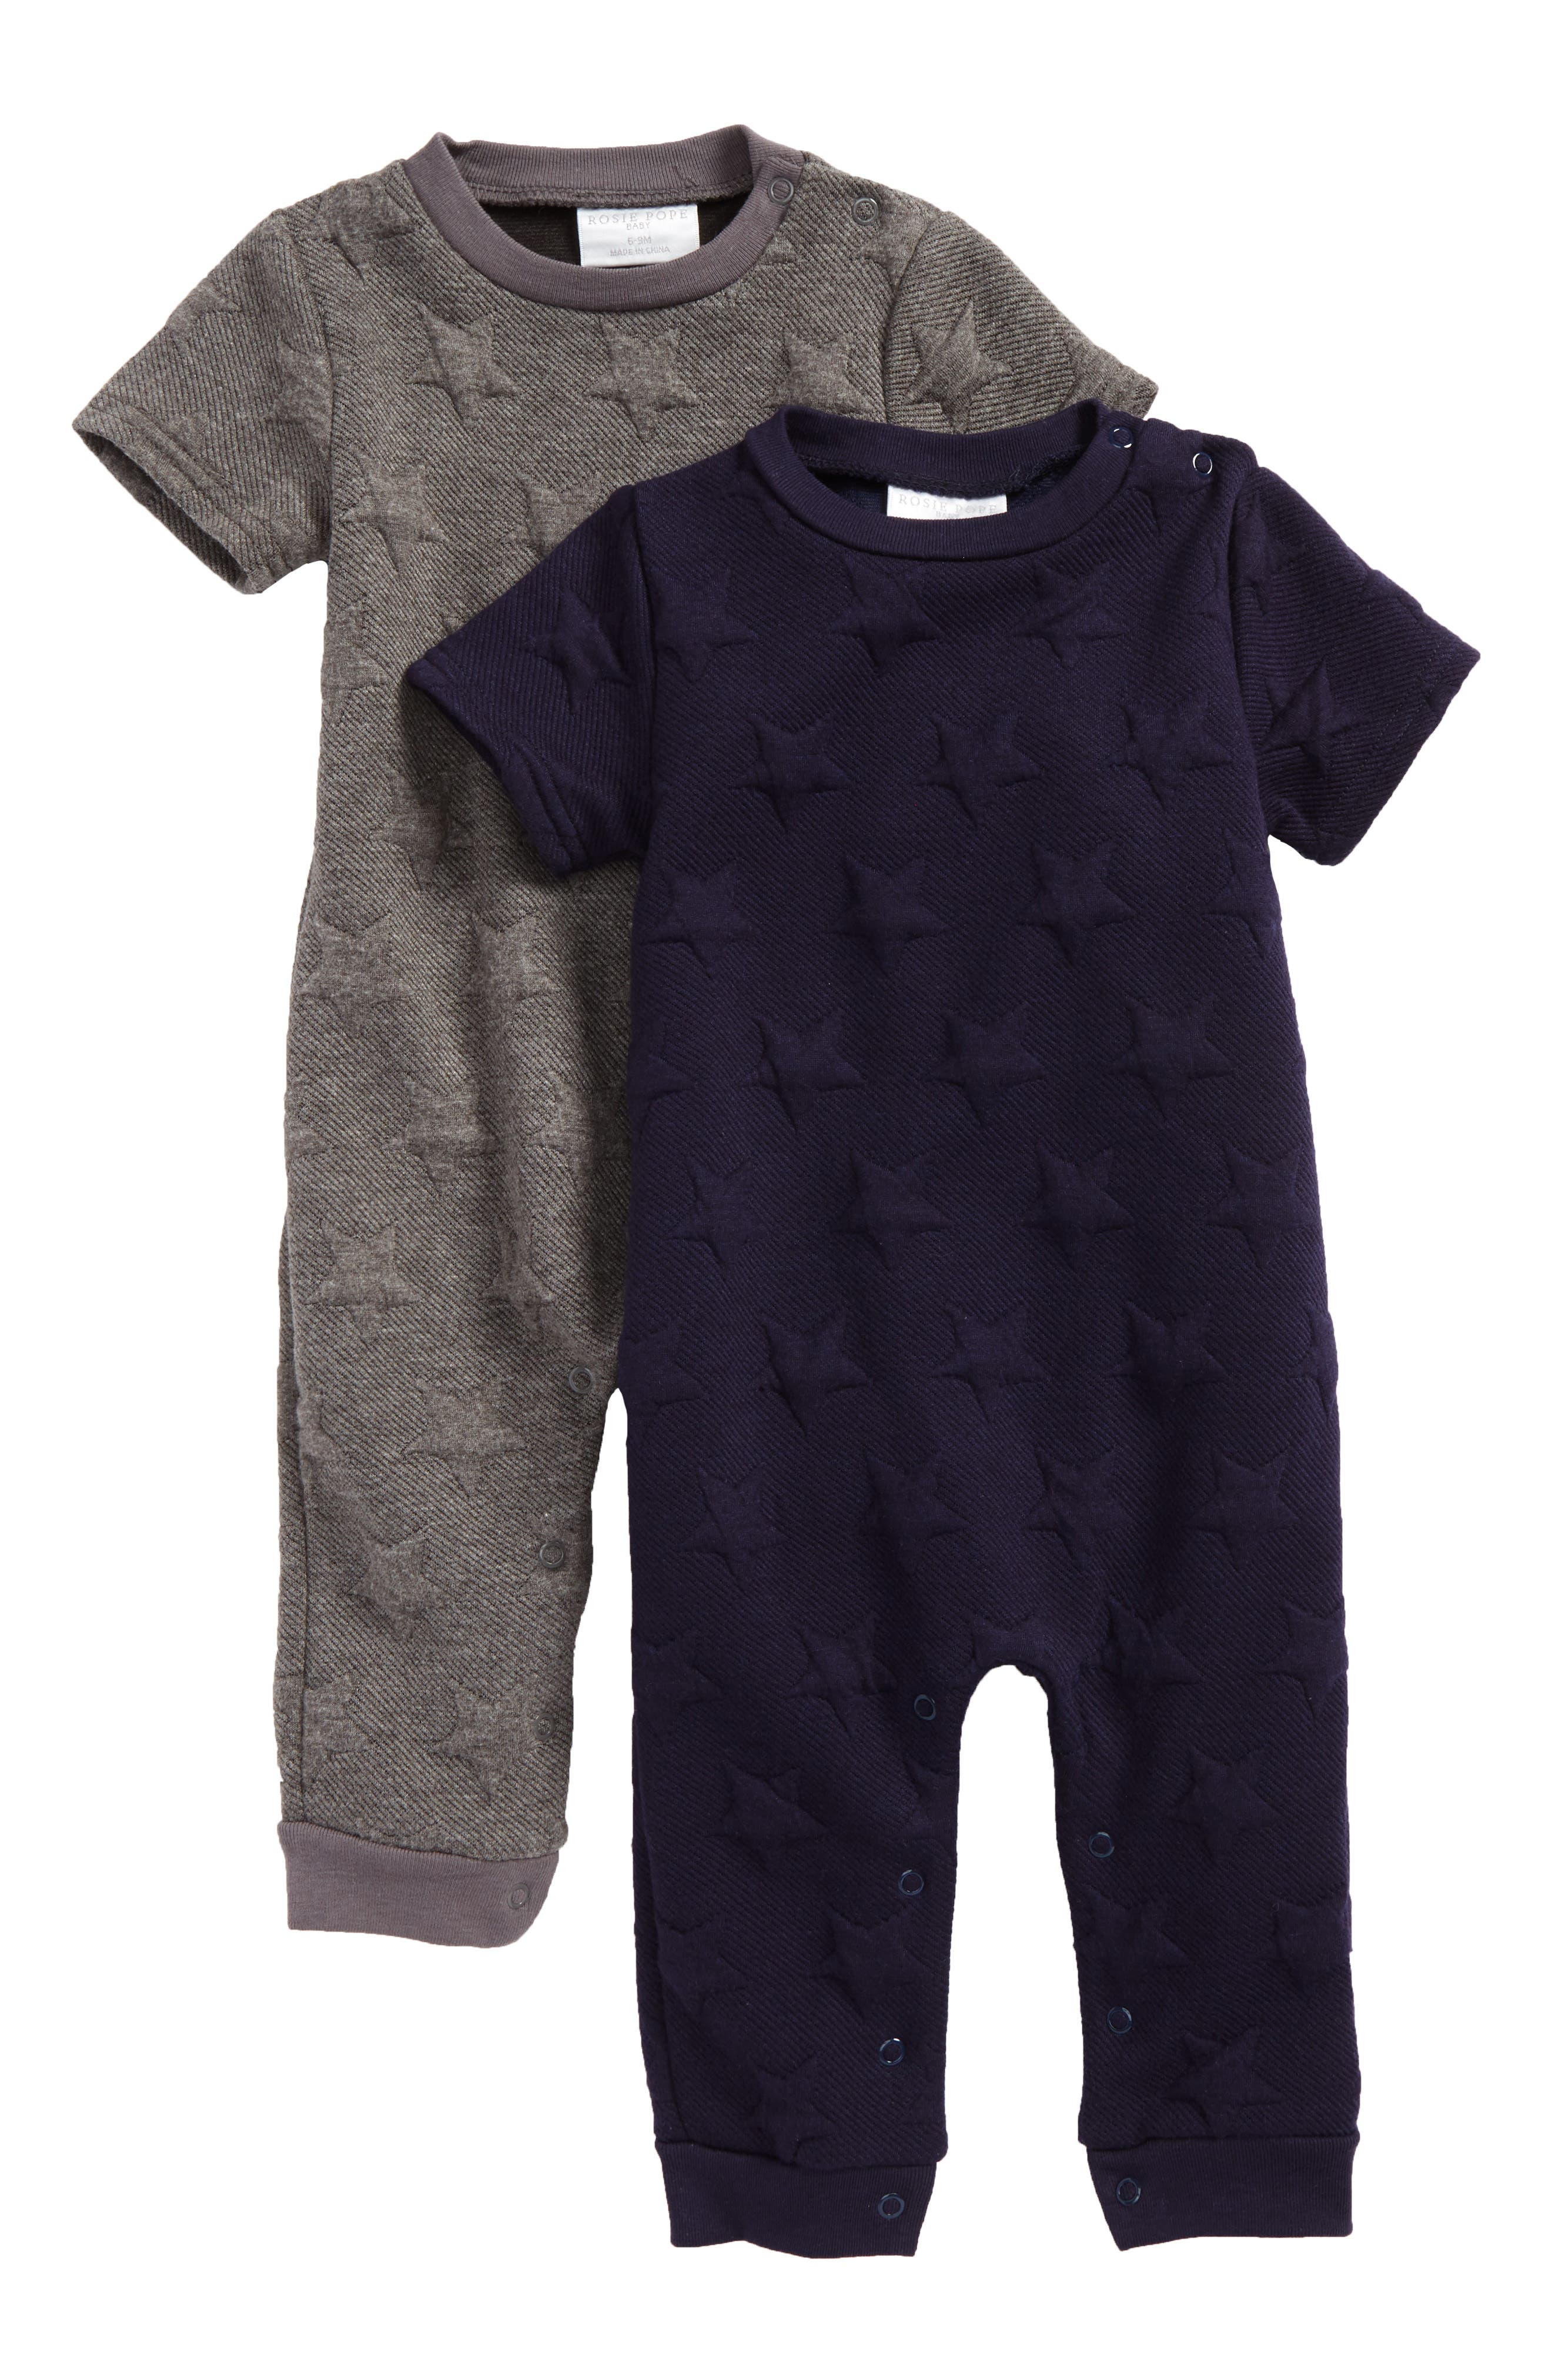 Rosie Pope 2-Pack Rompers (Baby Boys)